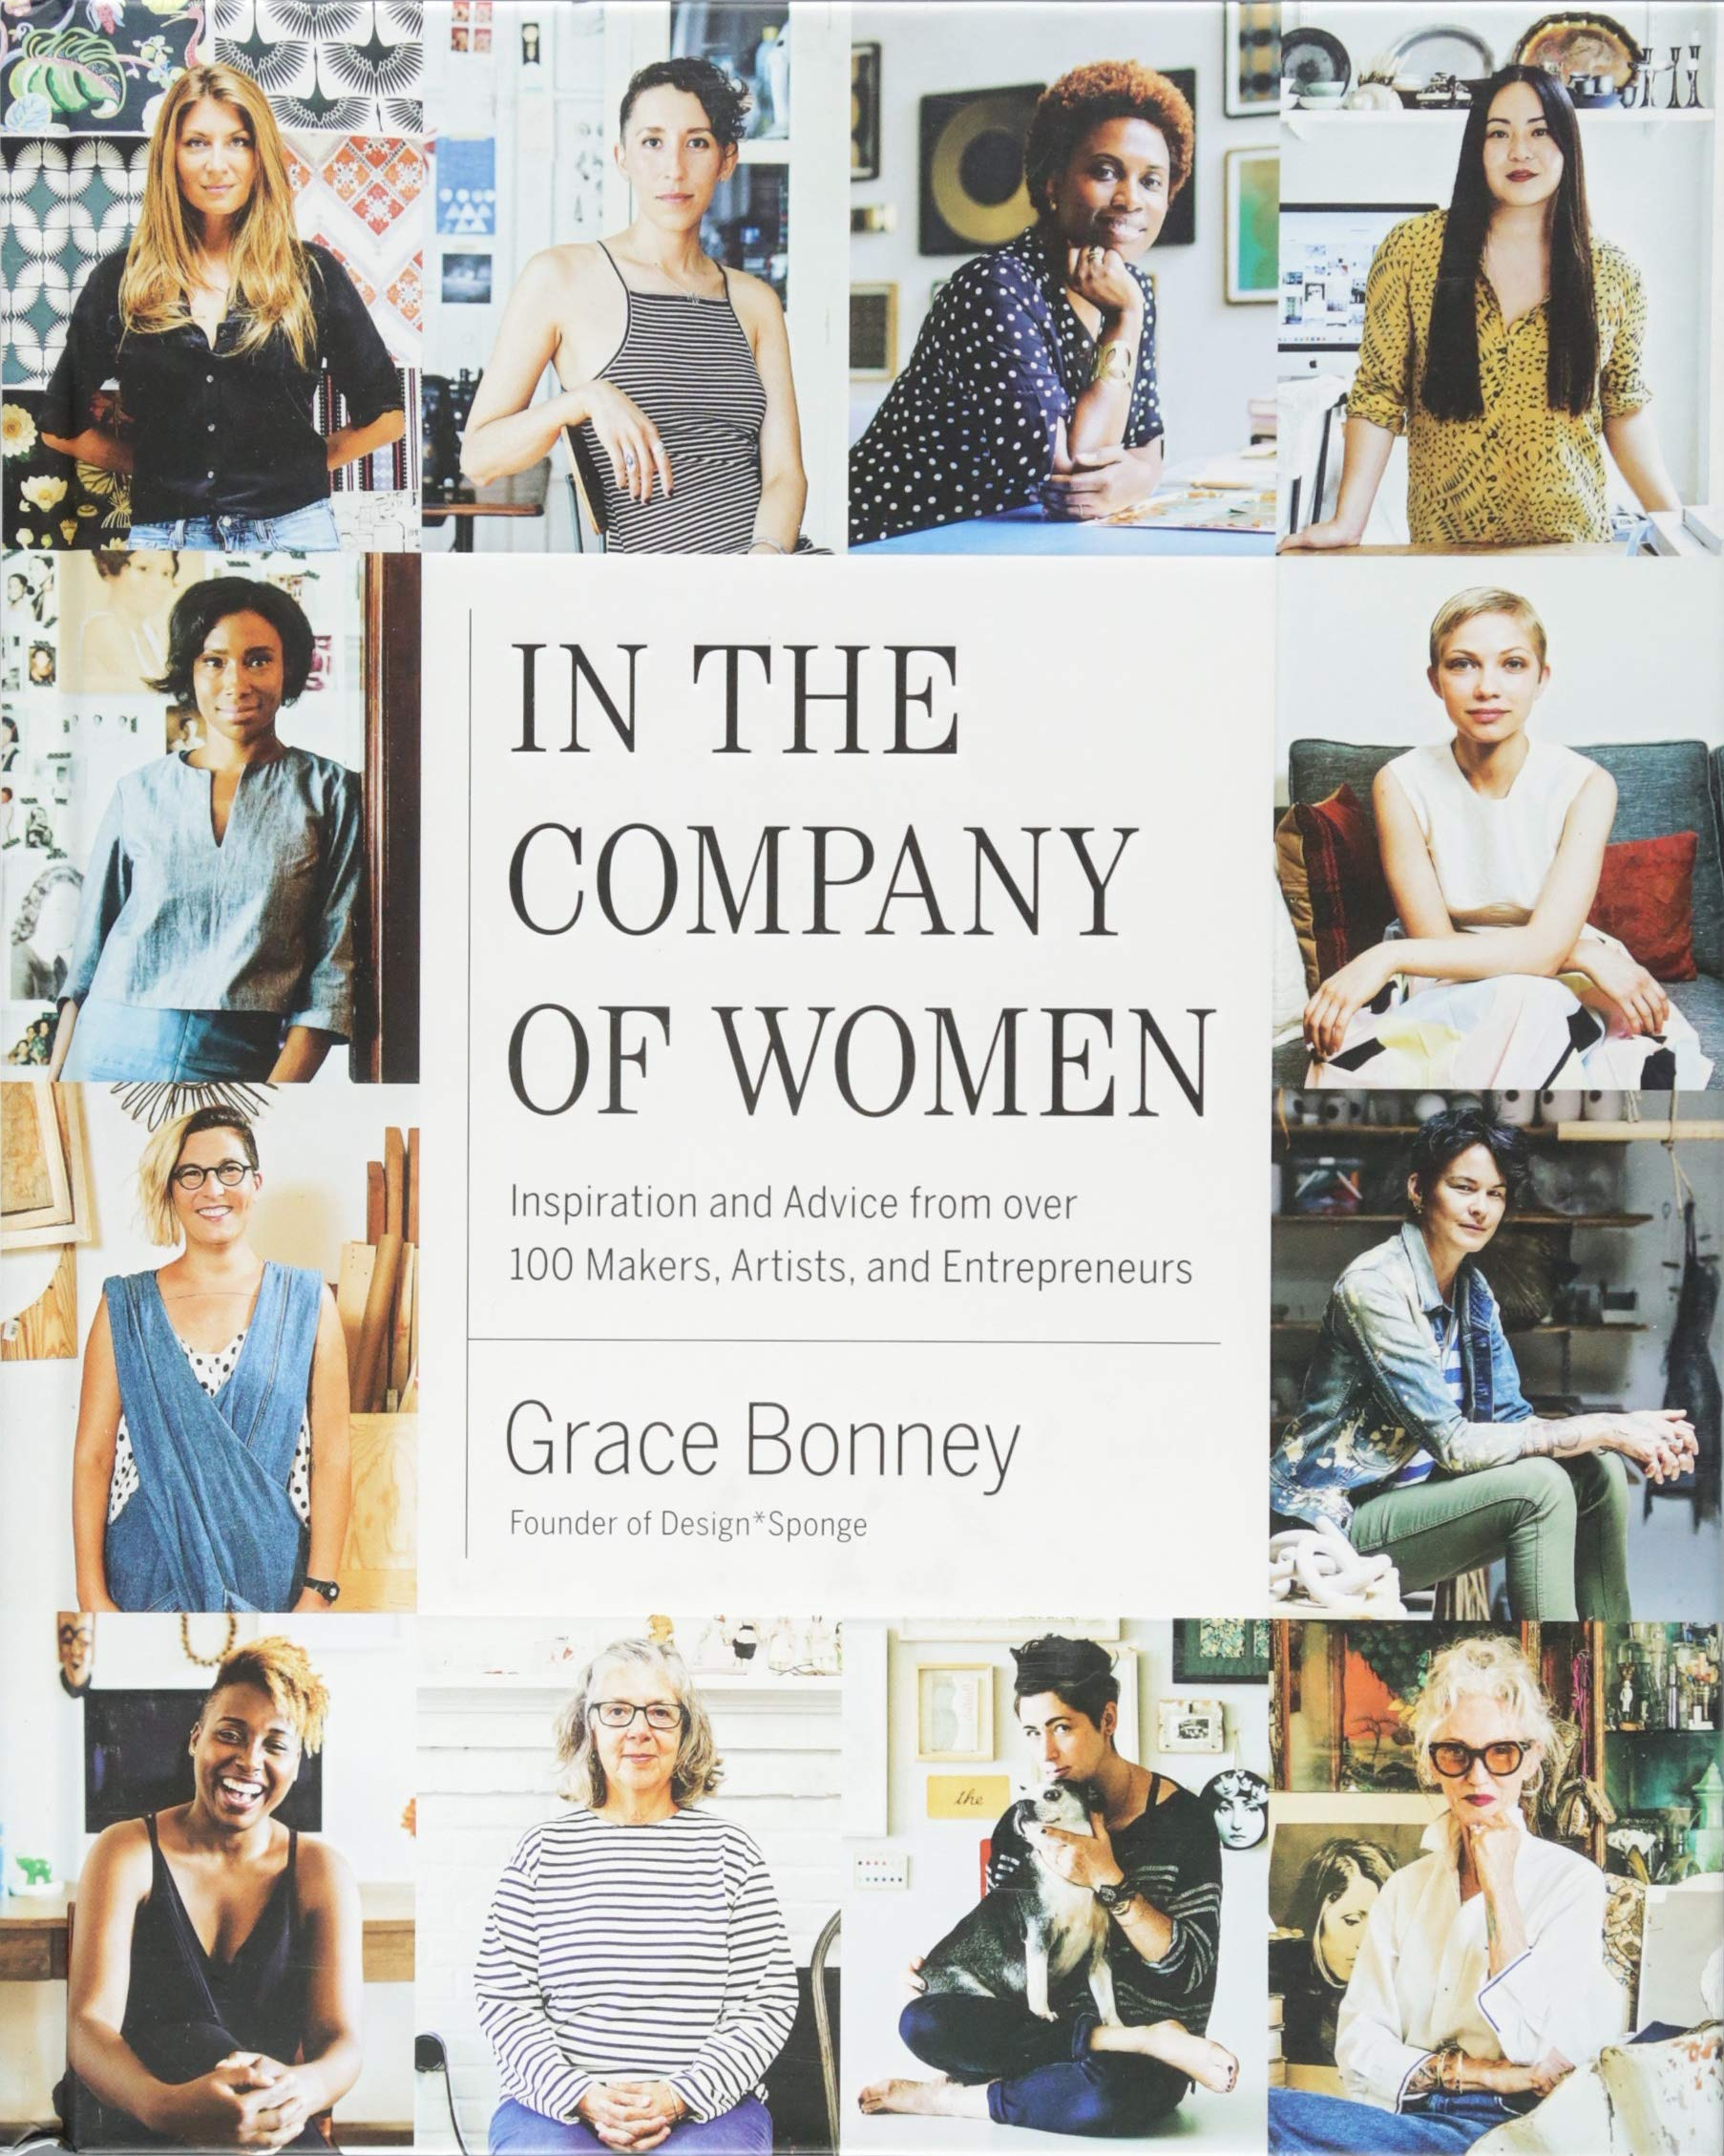 In the Company of Women: Inspiration and Advice from over 100 Makers, Artists, and Entrepreneurs by Artisan